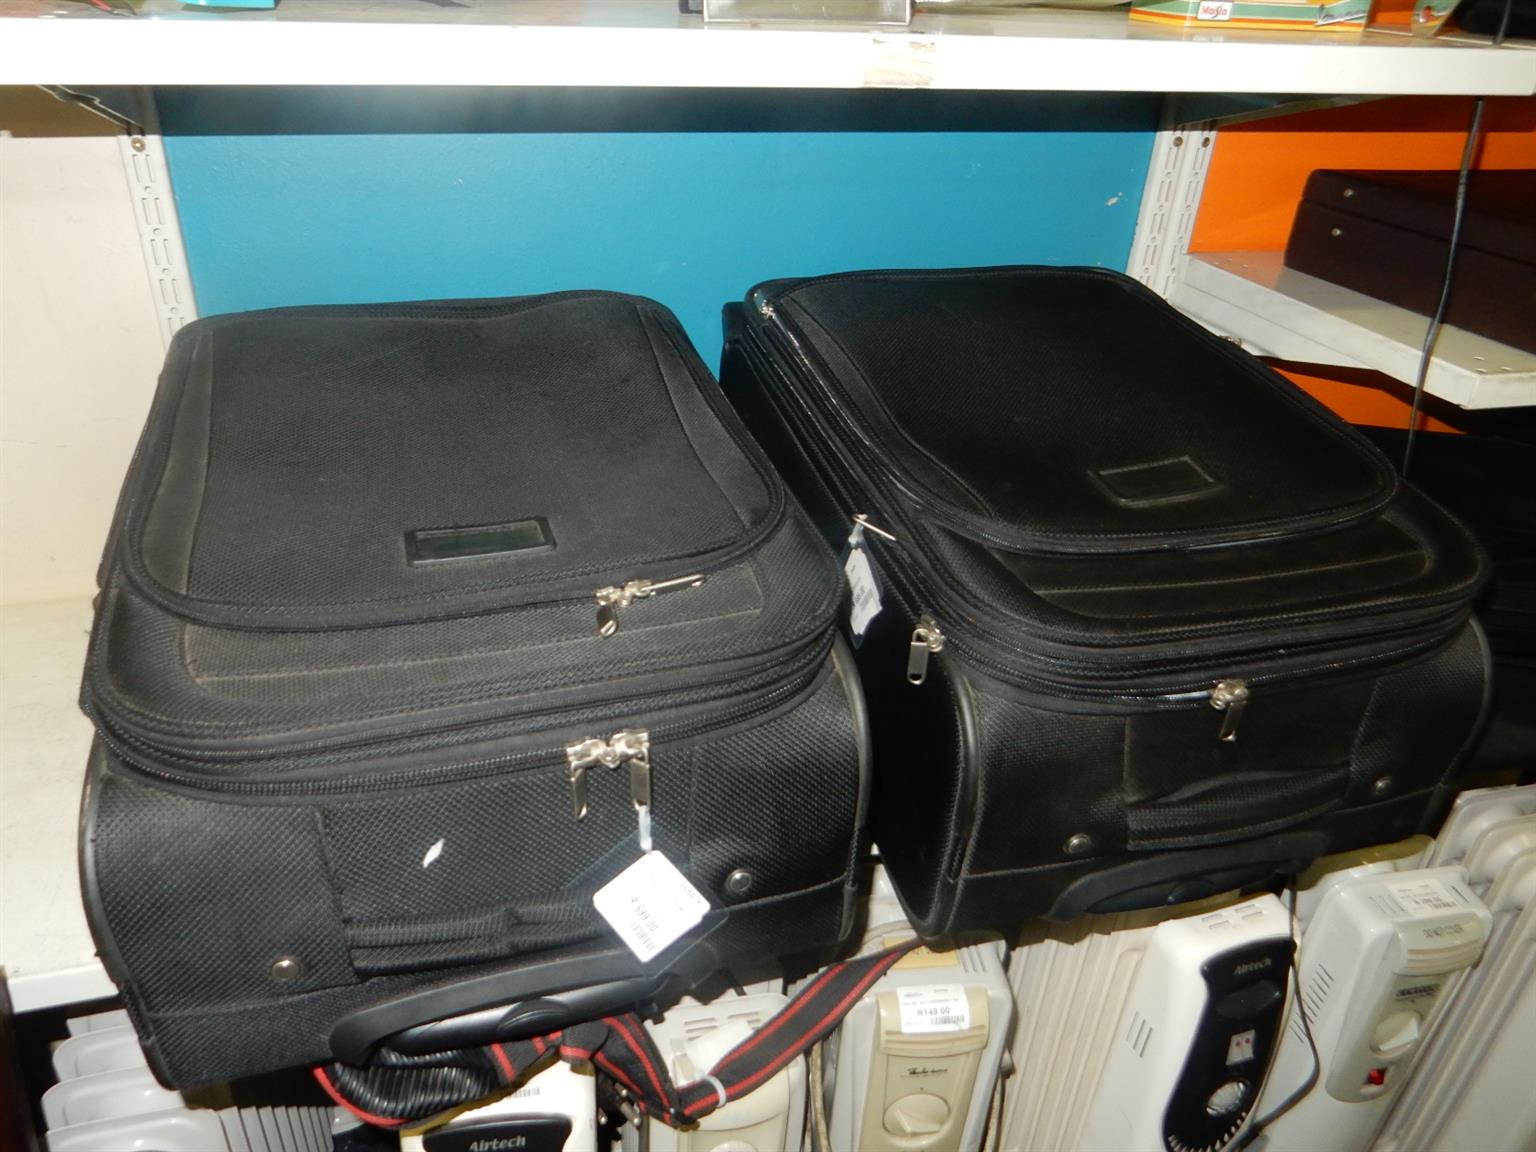 2x Travel Suitcases